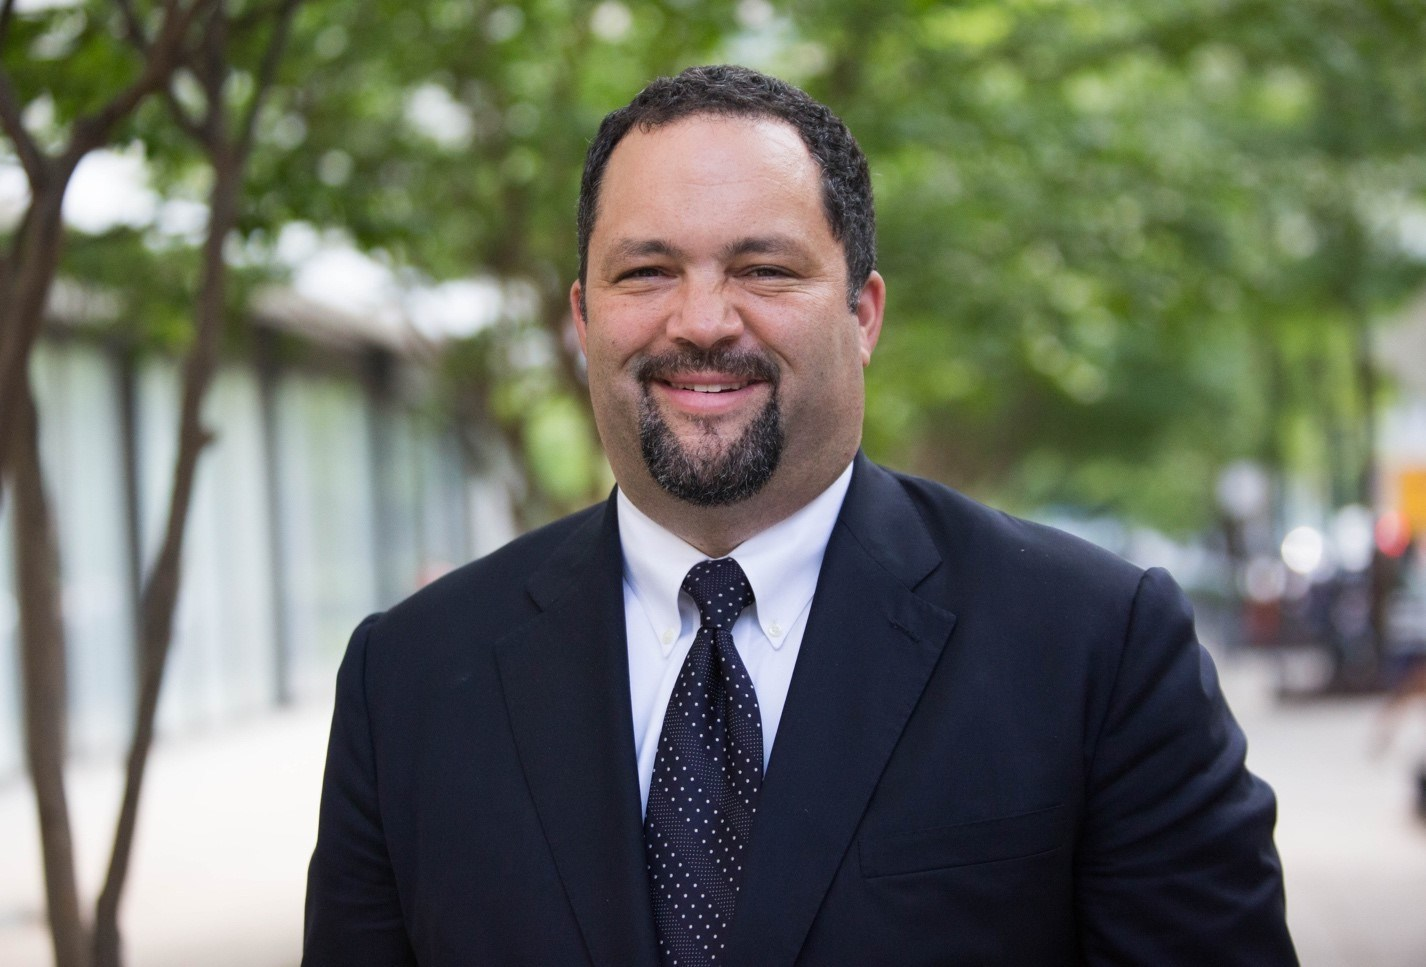 The nation's largest union representing federal and D.C. government workers, the American Federation of Government Employees, has endorsed Ben Jealous for election as Maryland's next governor.